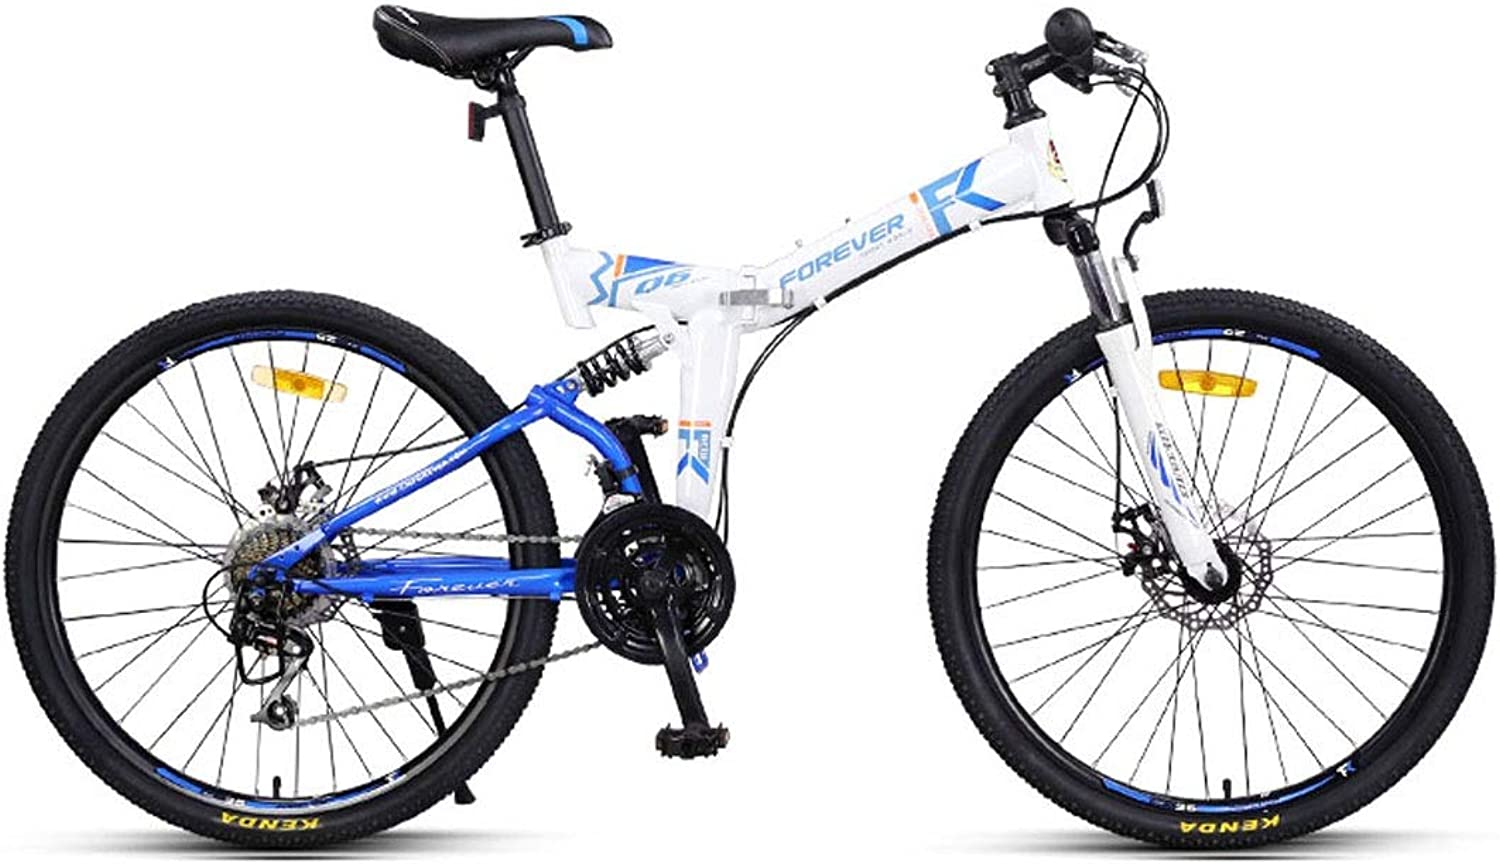 Bike, Mountain CrossCountry Bike, 24speed24 26 Inch, Adult Foldable Double ShockAbsorbing Soft Tail Racing